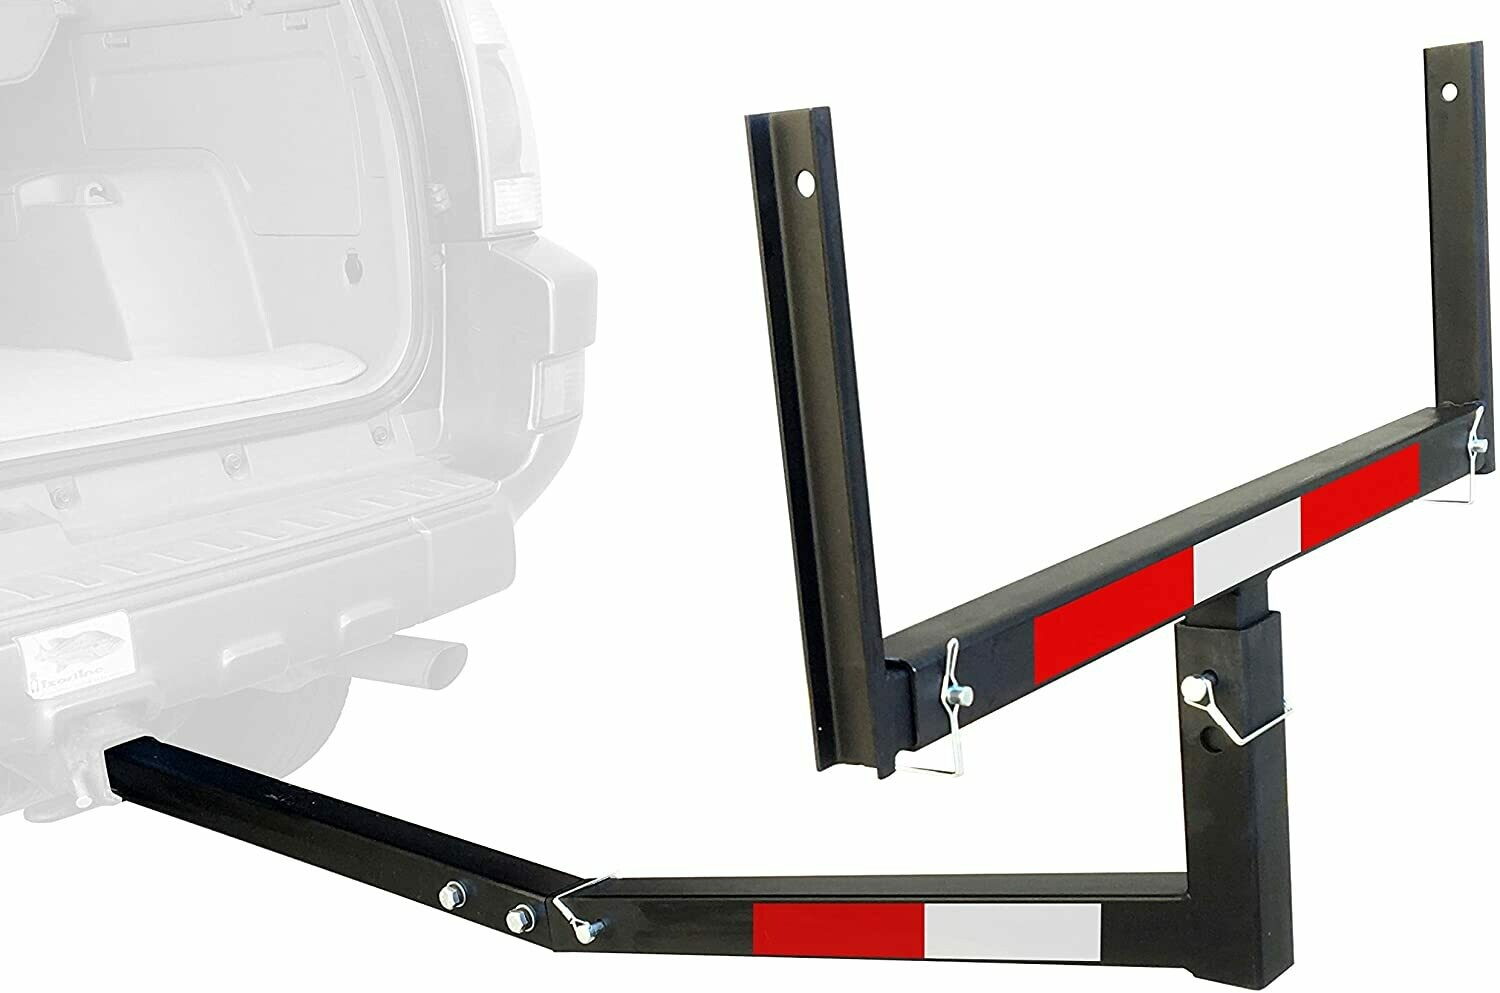 Appoutga Hitch Mount Truck Bed Extender (For Ladder, Rack, Canoe, Kayak, Long Pipes and Lumber)  *******No Shipping  Store pickup only******